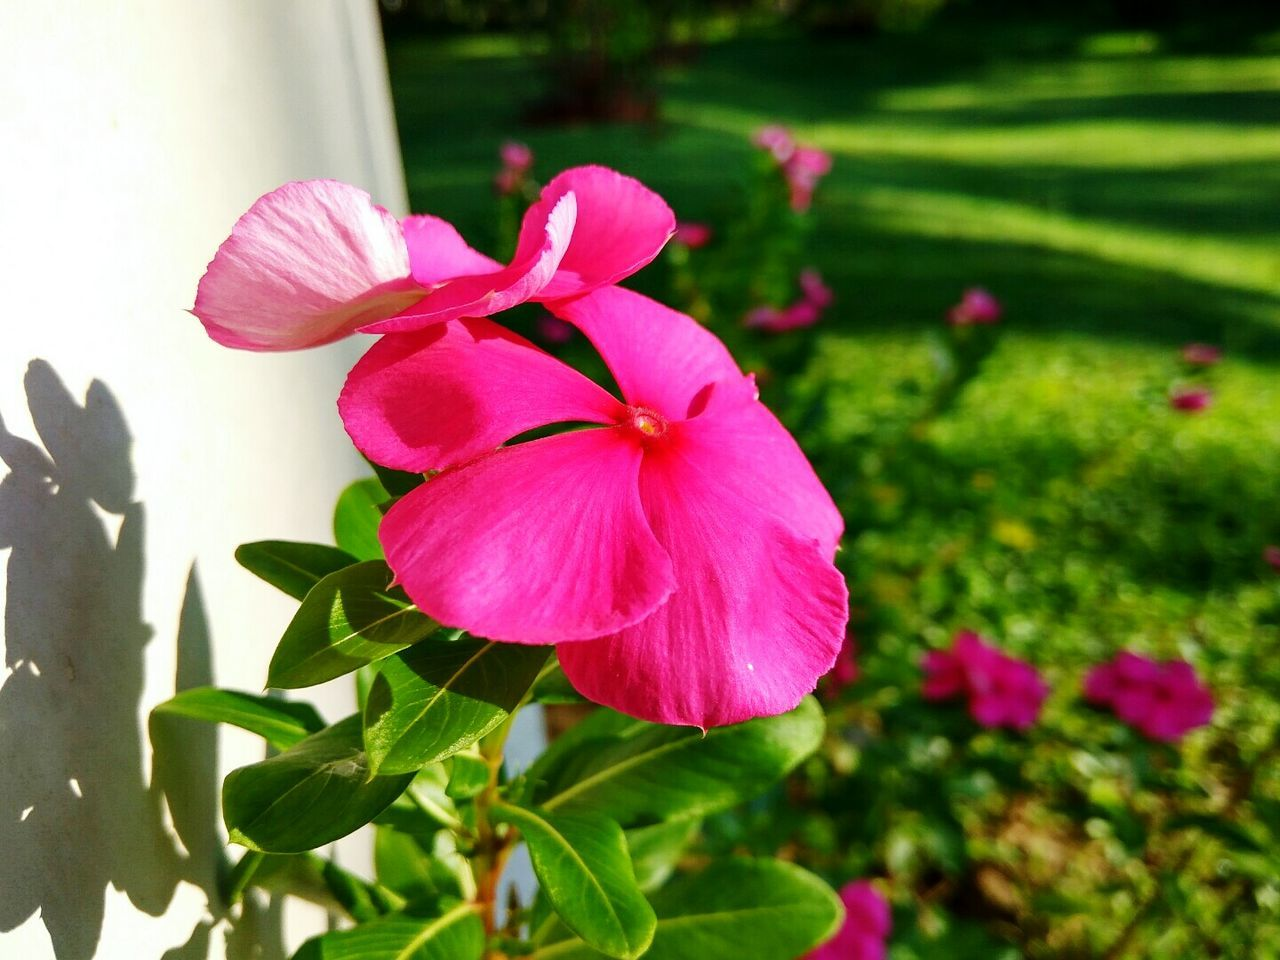 Flower Pink Color Plant Nature Petal Beauty In Nature Close-up Growth Flower Head Leaf Fragility Outdoors Freshness No People Day Nature EyeEm Best Shots The Way Forward Selective Focus High Angle View NiceShot Eyeemphotography Awesome_shots Beauty In Nature Freshness